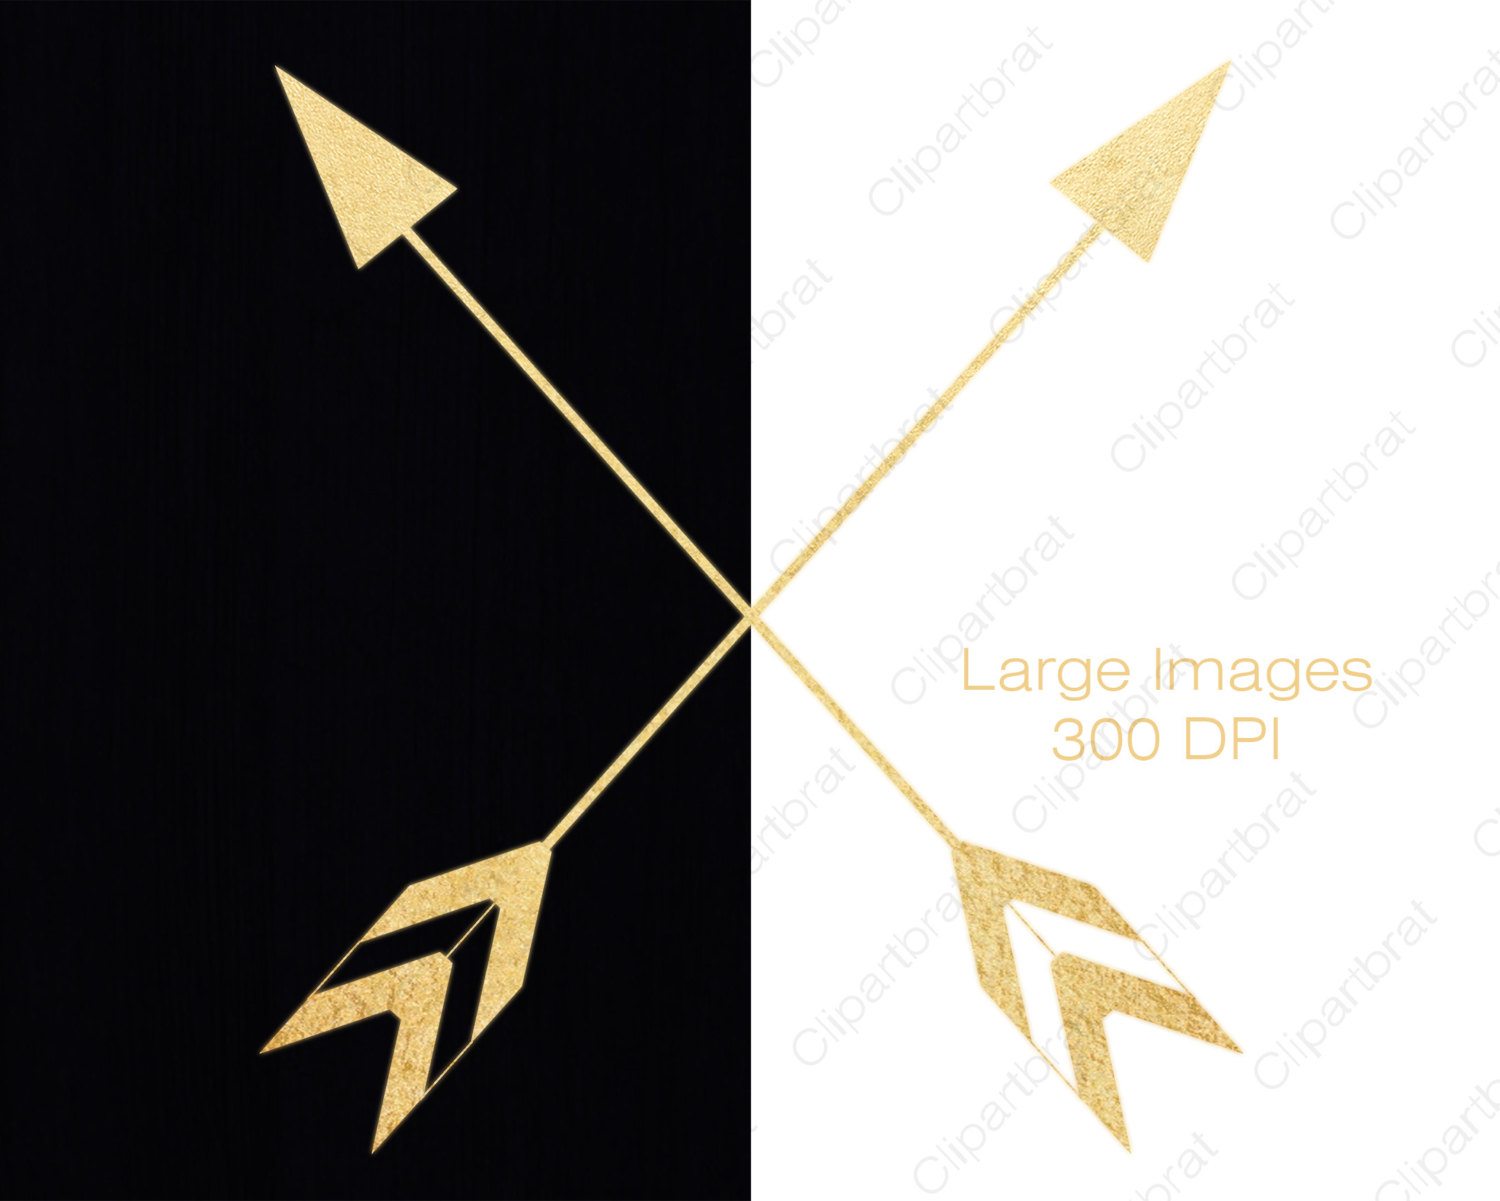 Gold tribal arrow clipart image royalty free GOLD FOIL ARROW Clipart Commercial Use Clip Art Metallic Gold ... image royalty free